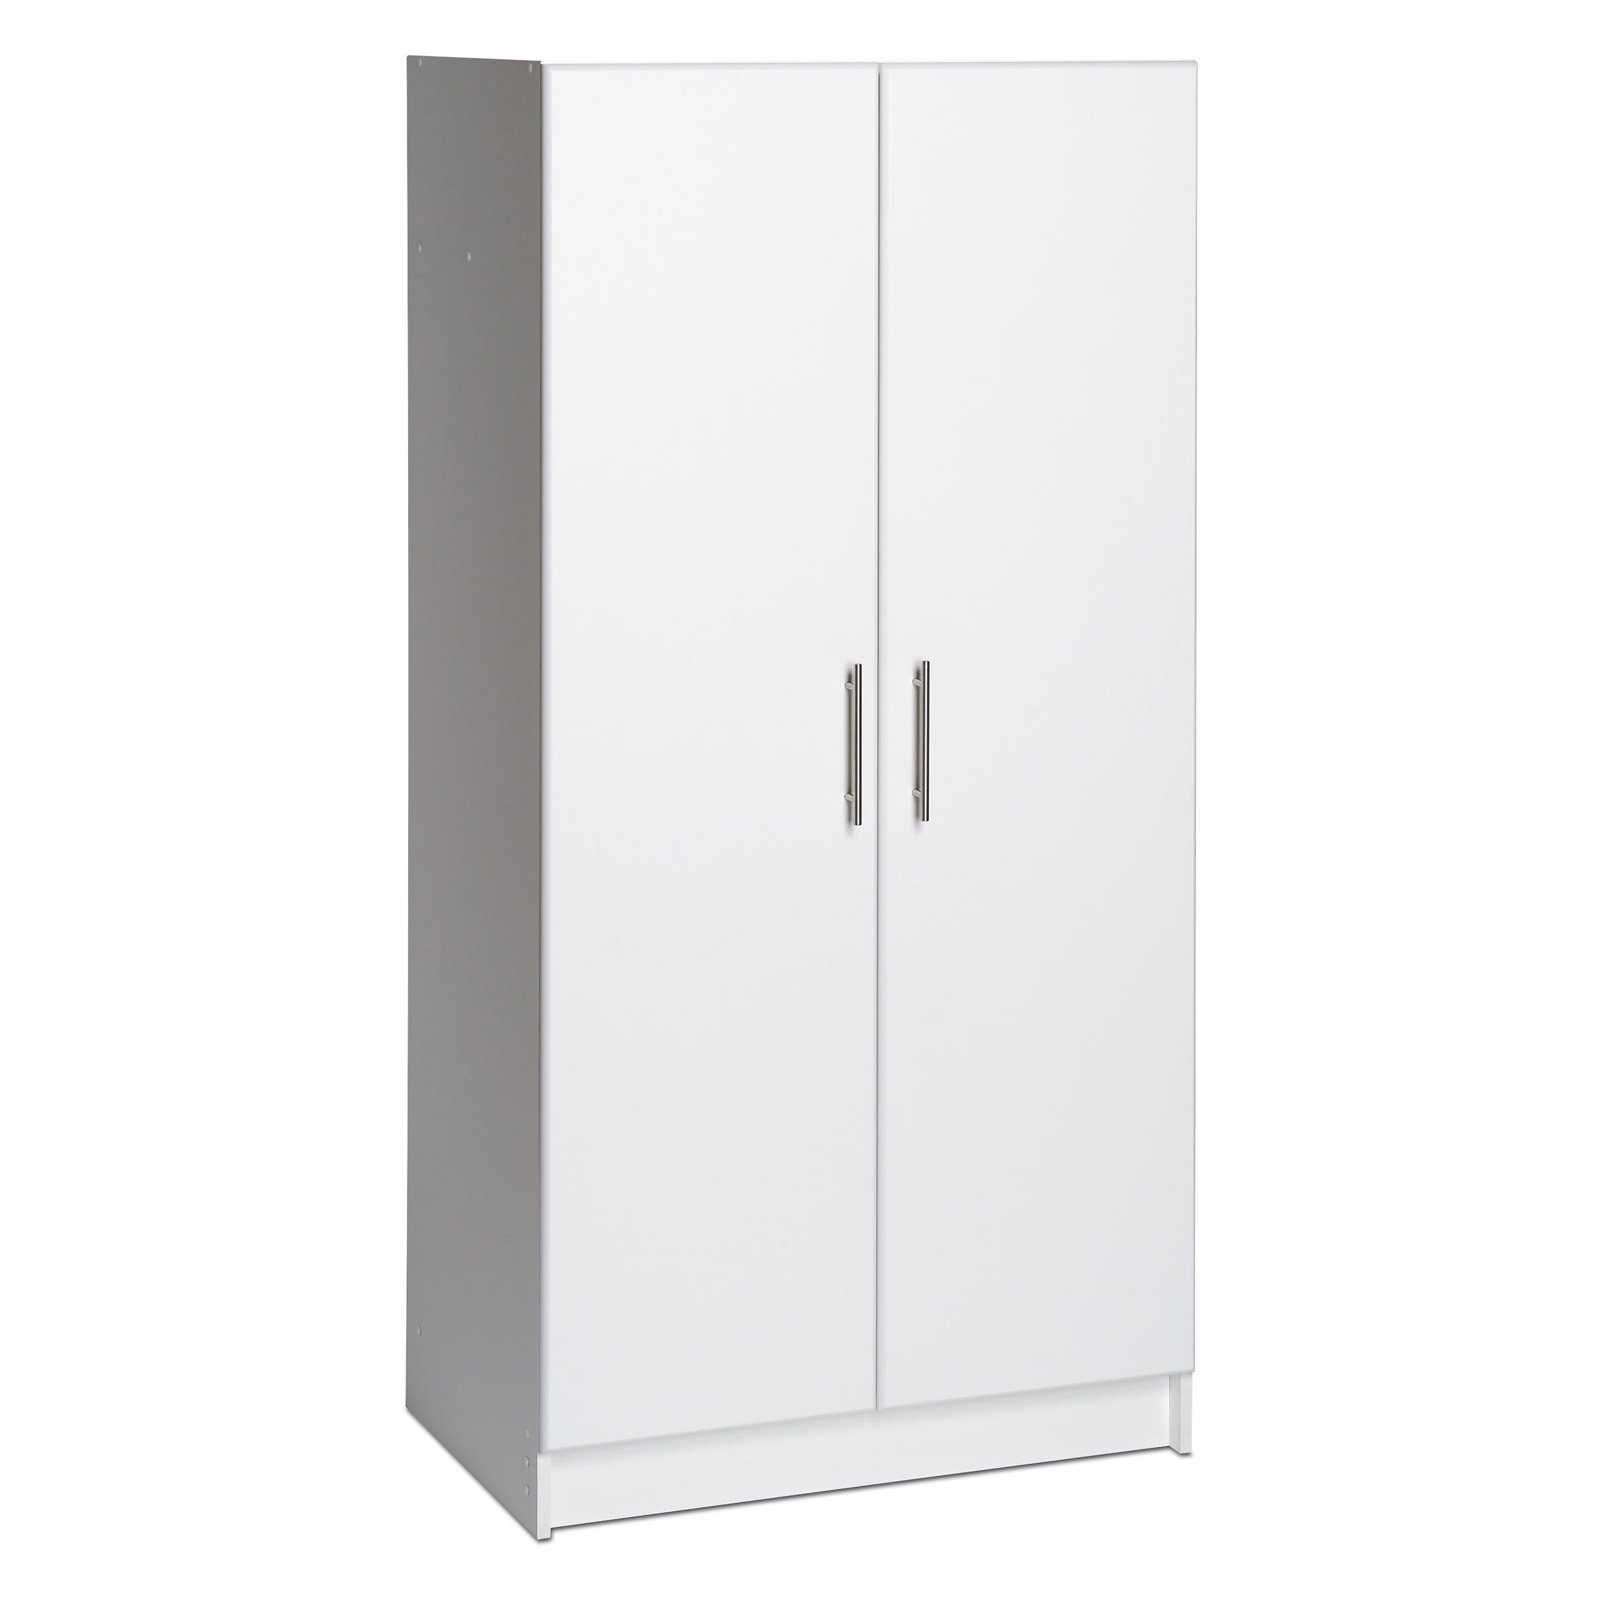 "Prepac 32"" Storage Cabinet by Prepac Manufacturing Ltd"